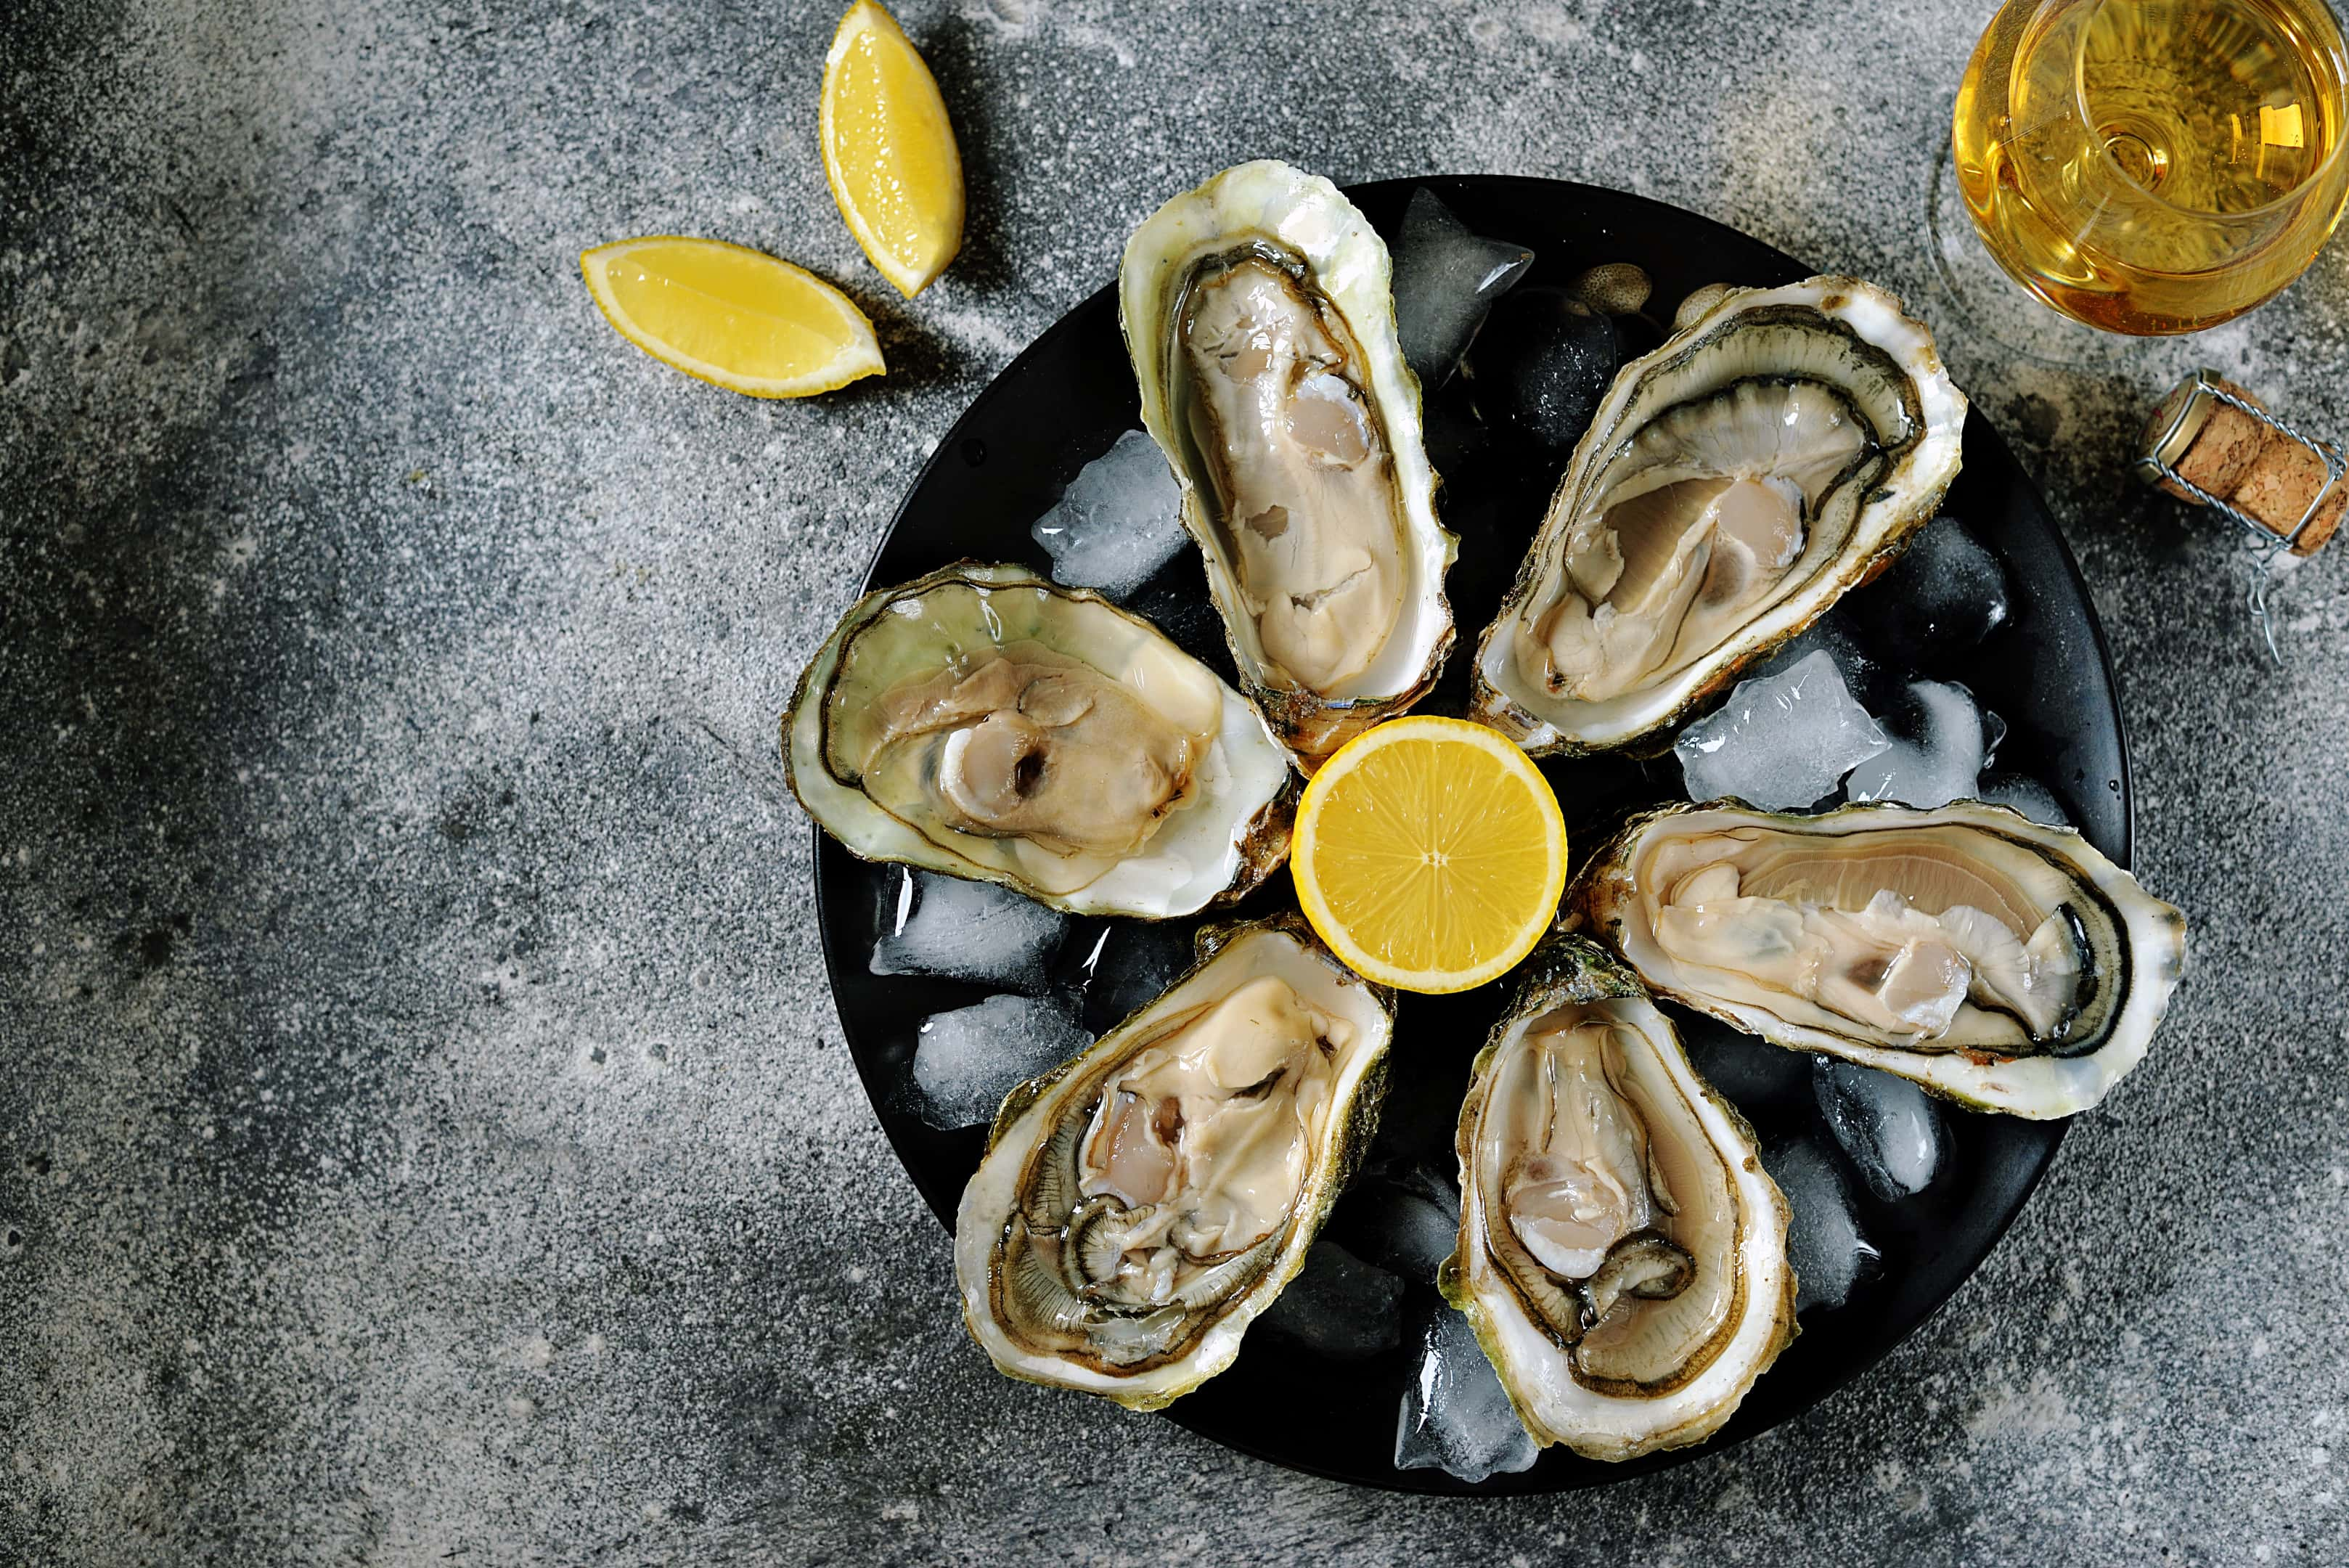 Fresh oysters with lemon slices on plate